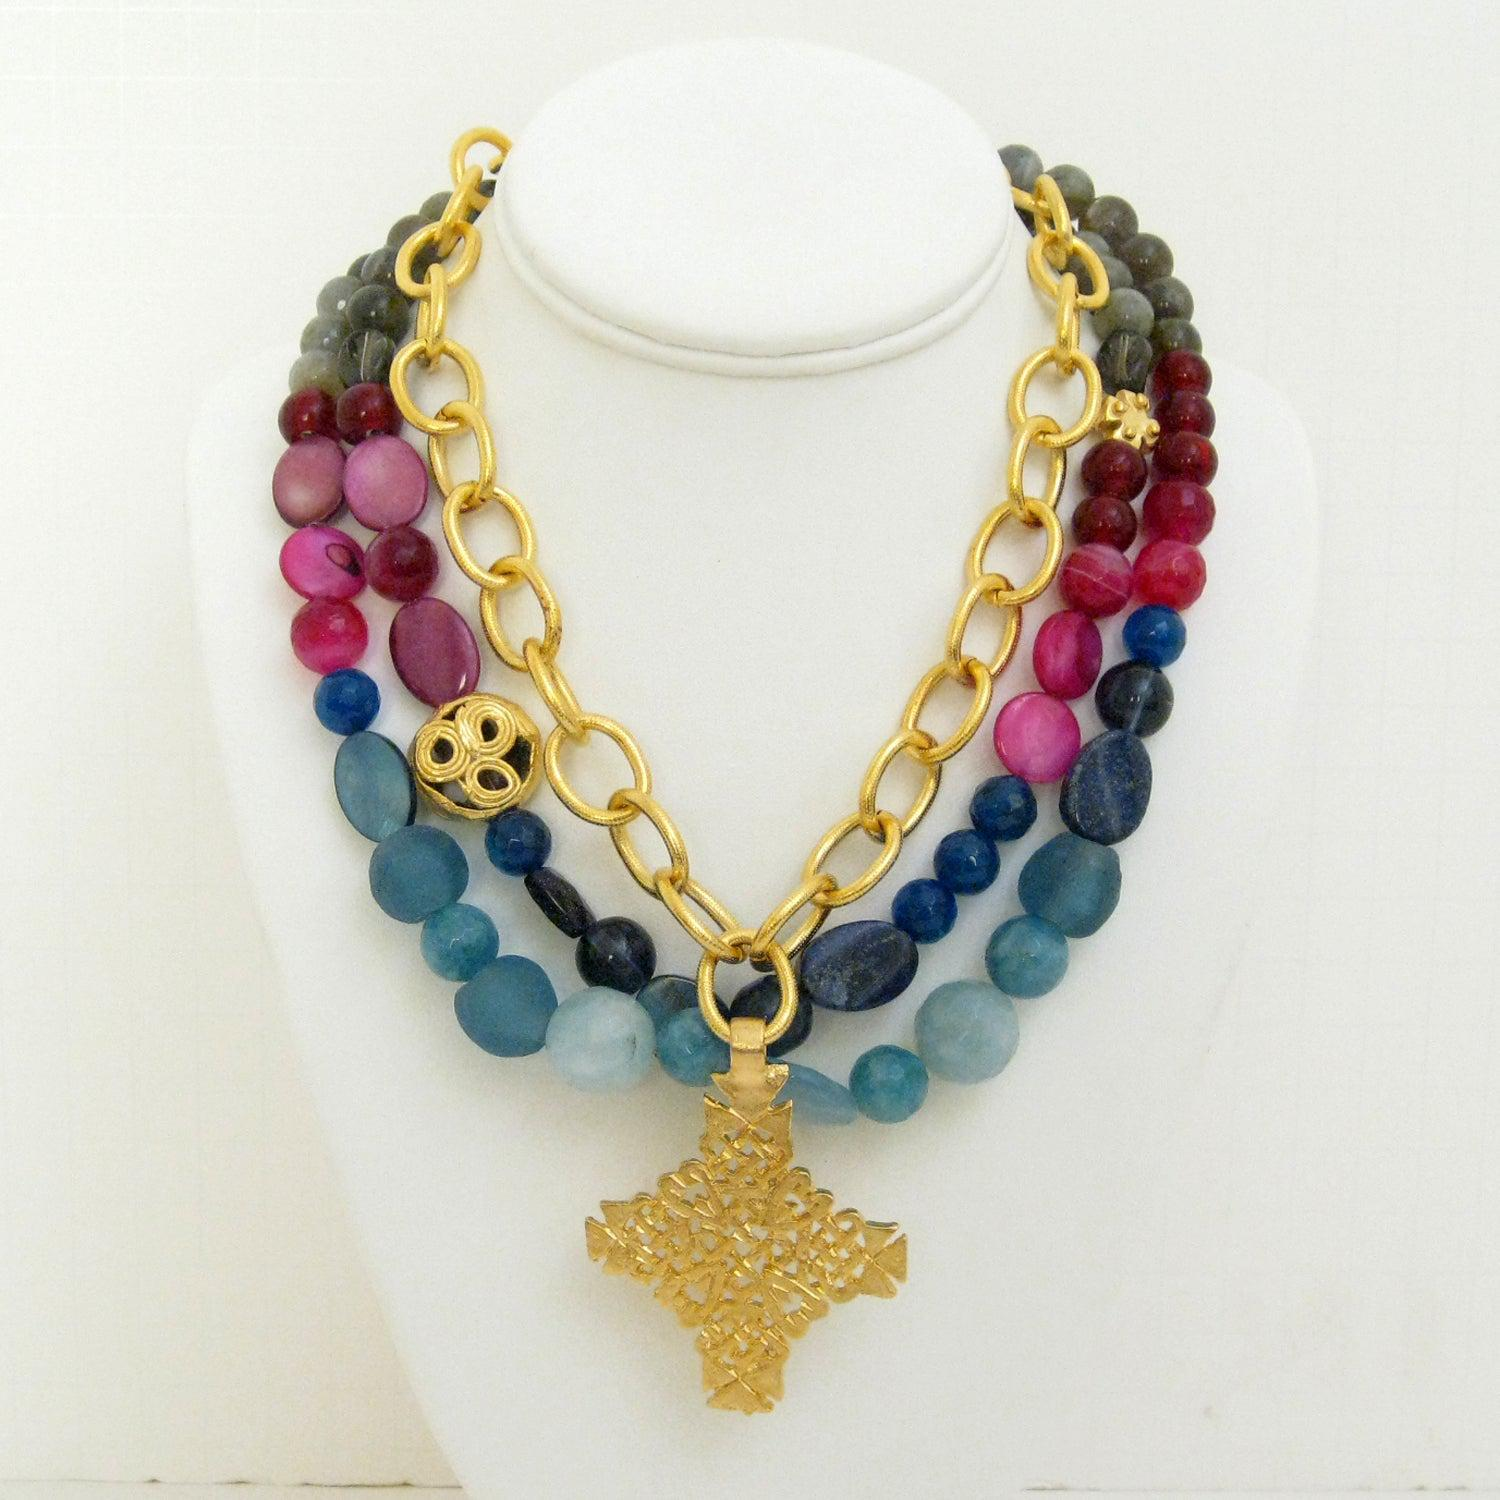 meredith semi product necklace charlotte wishlist loading precious jewellery to add stone a jackson